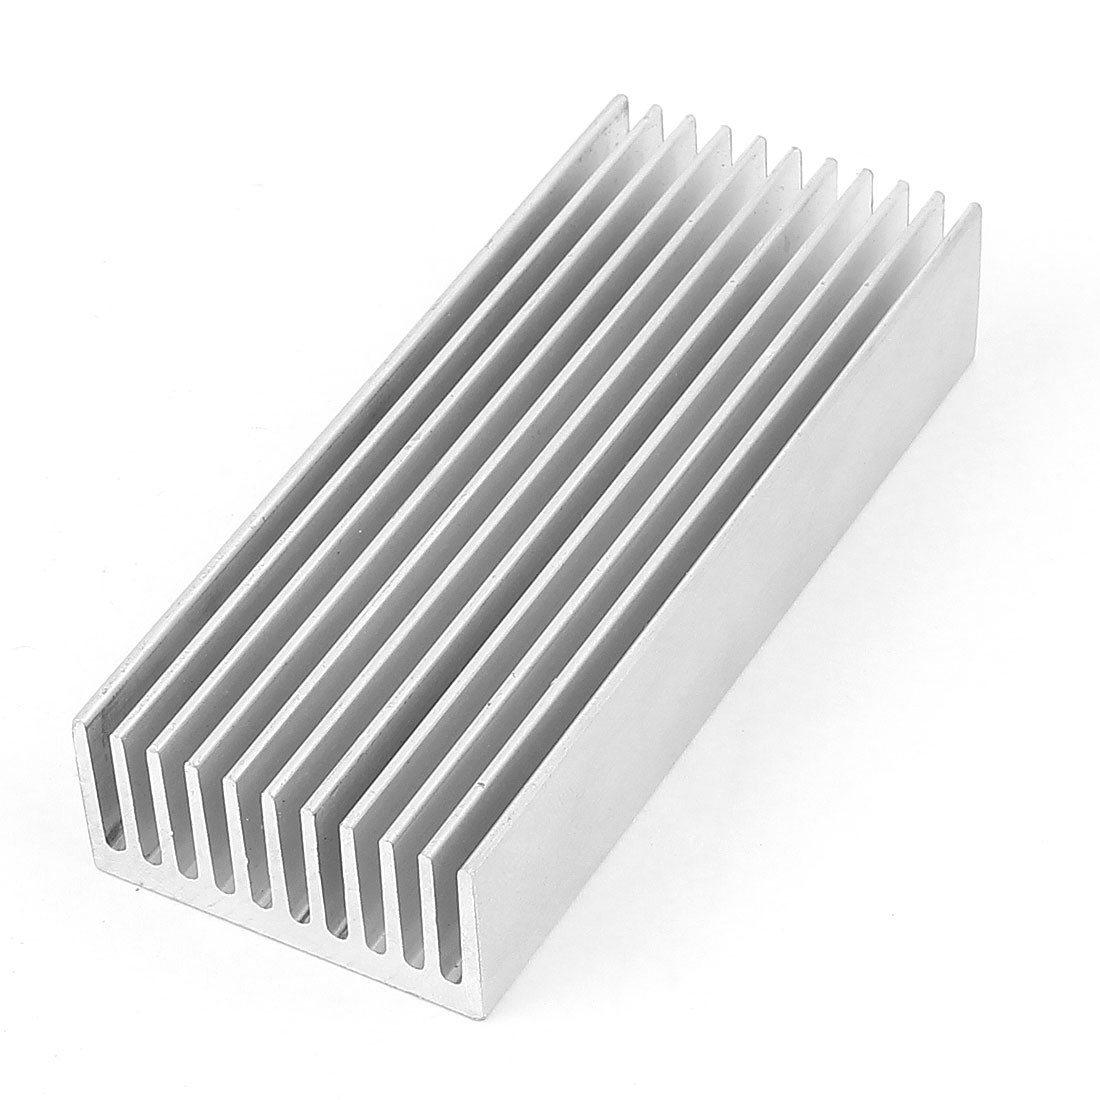 Aluminum Heatsink Cooling Fin 98 x 40 x 20mm for IC MOSFET